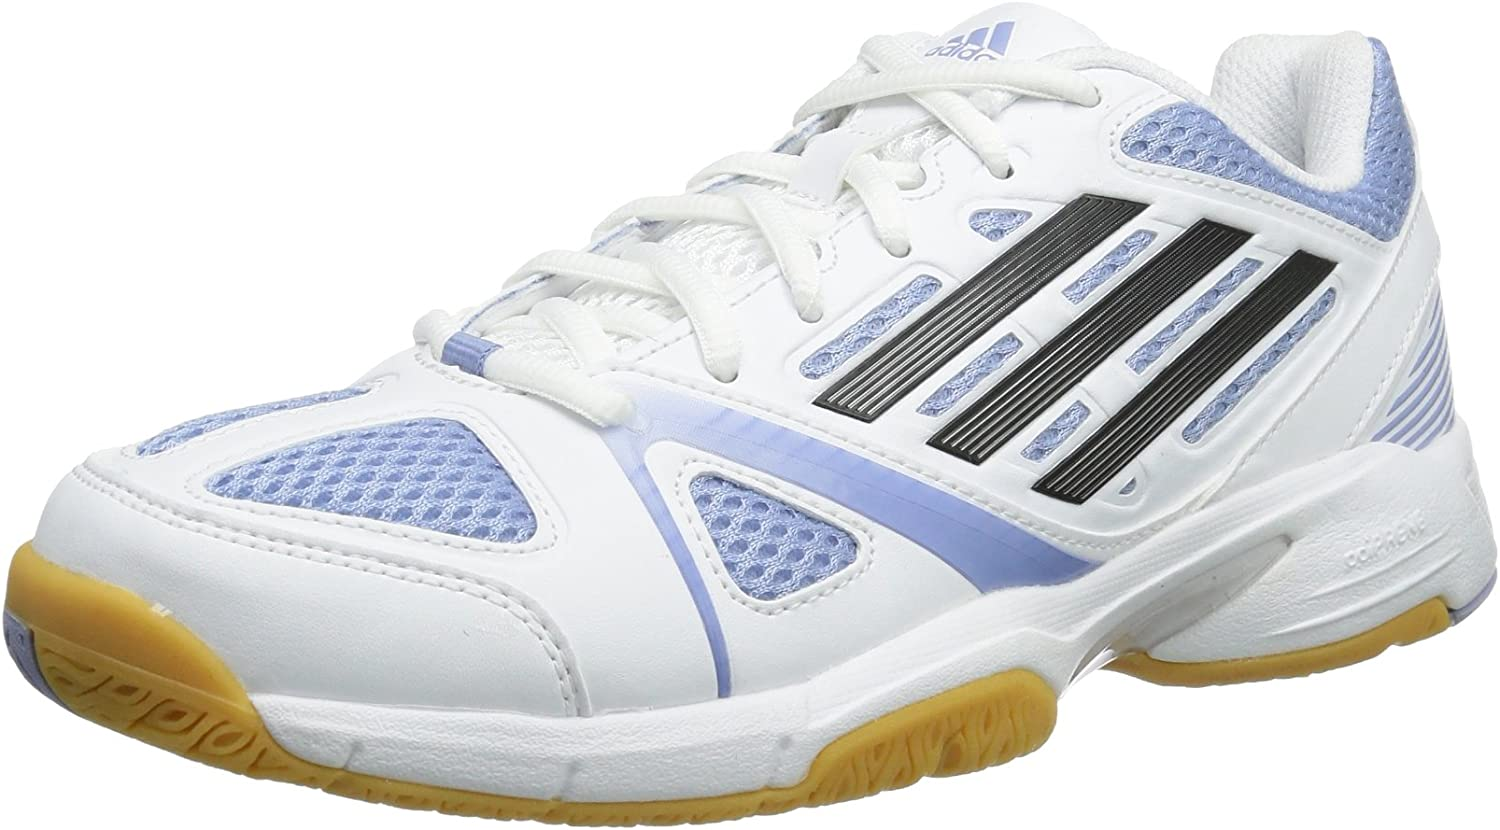 adidas Opticourt Team Light 2 Q21844, Damen Hallenschuhe